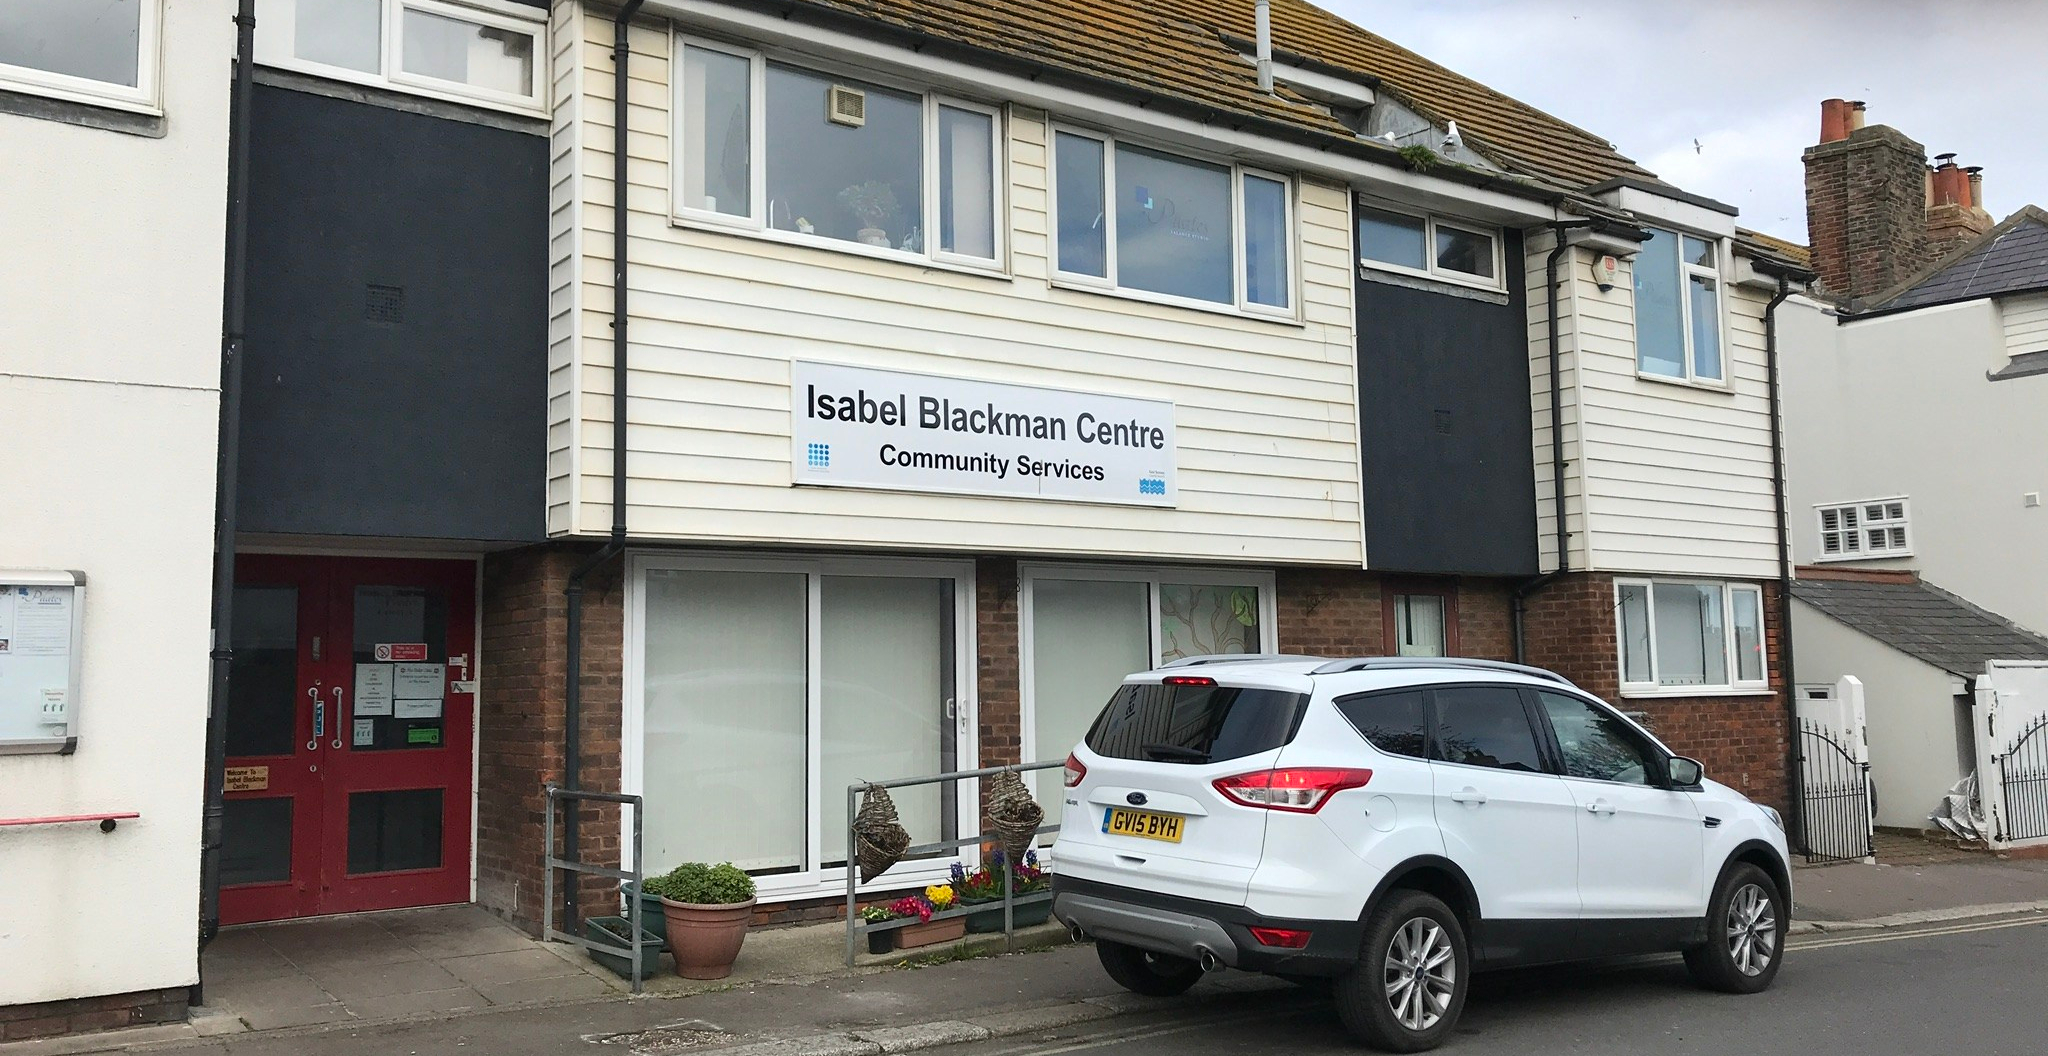 Council to ignore petition demanding Isabel Blackman centre be saved